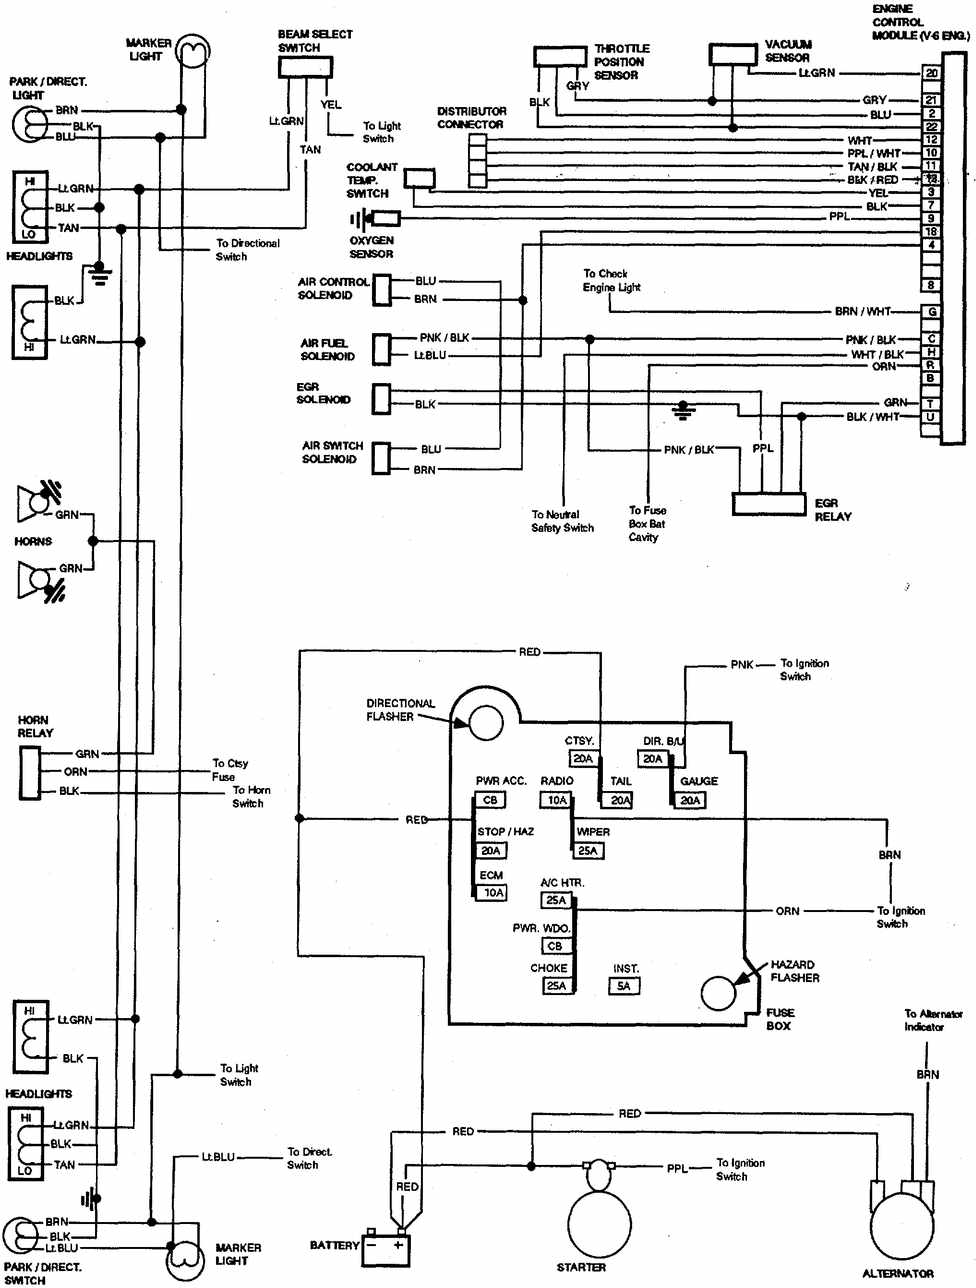 rv ac electrical diagram